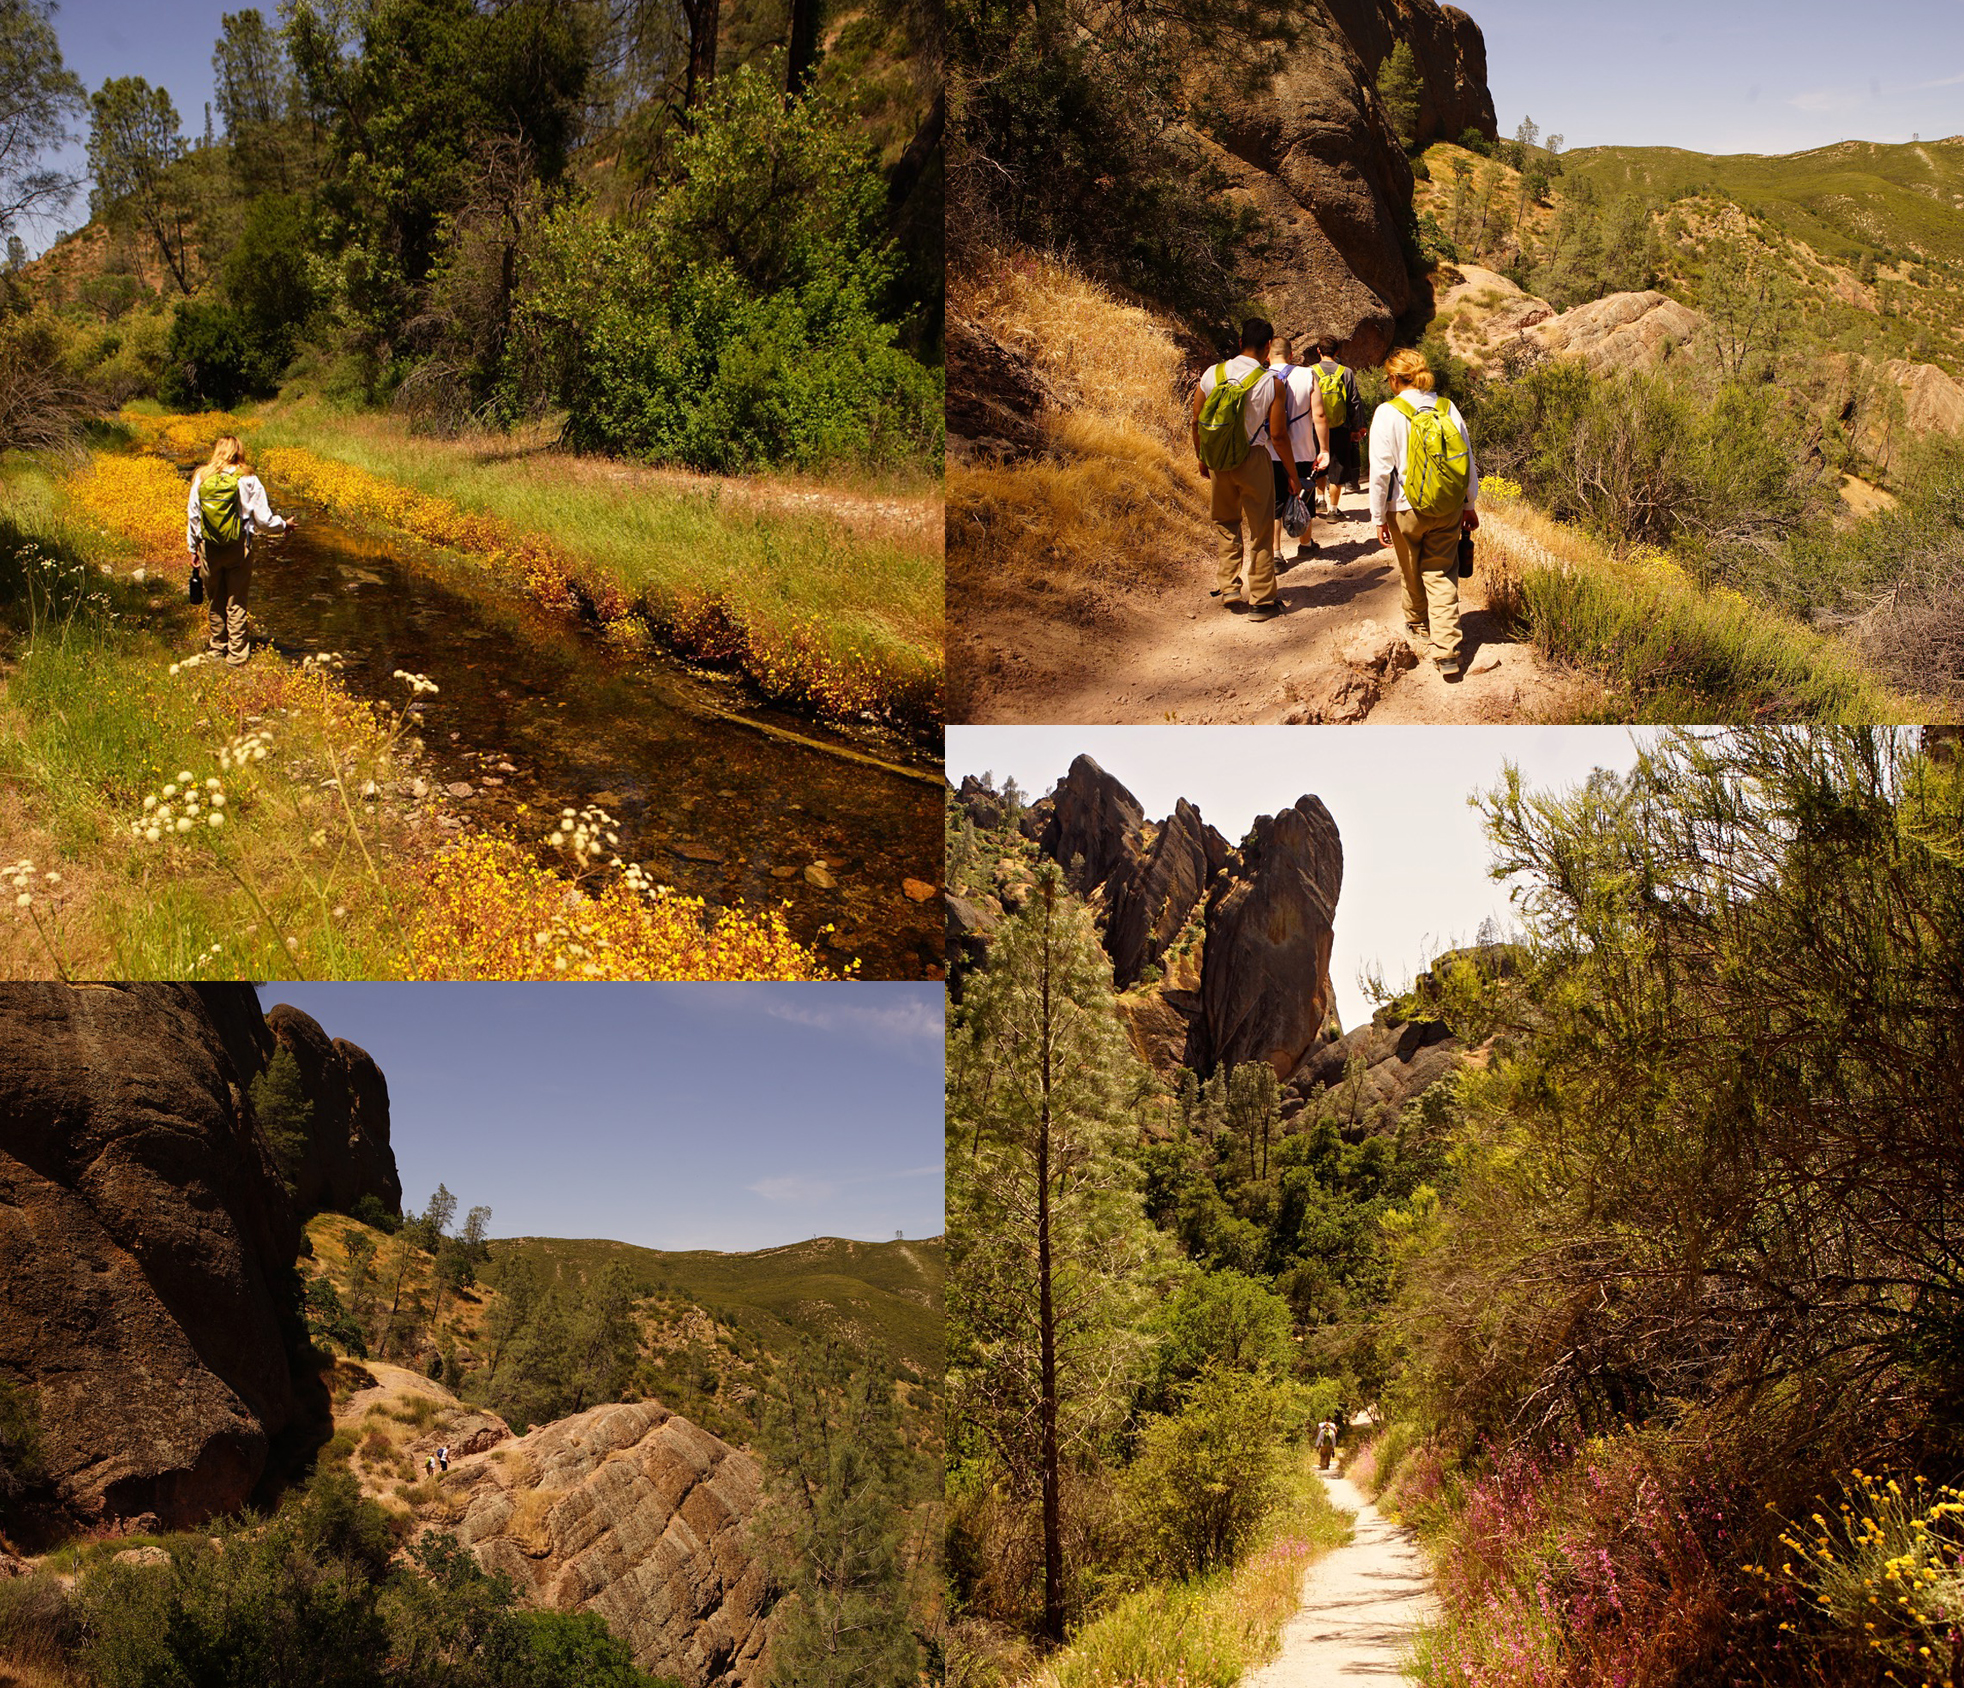 May 7th Ron and board member Steve Shackleton ventured down to Pinnacles National Park for a day trip with youth from San Benito Probation.